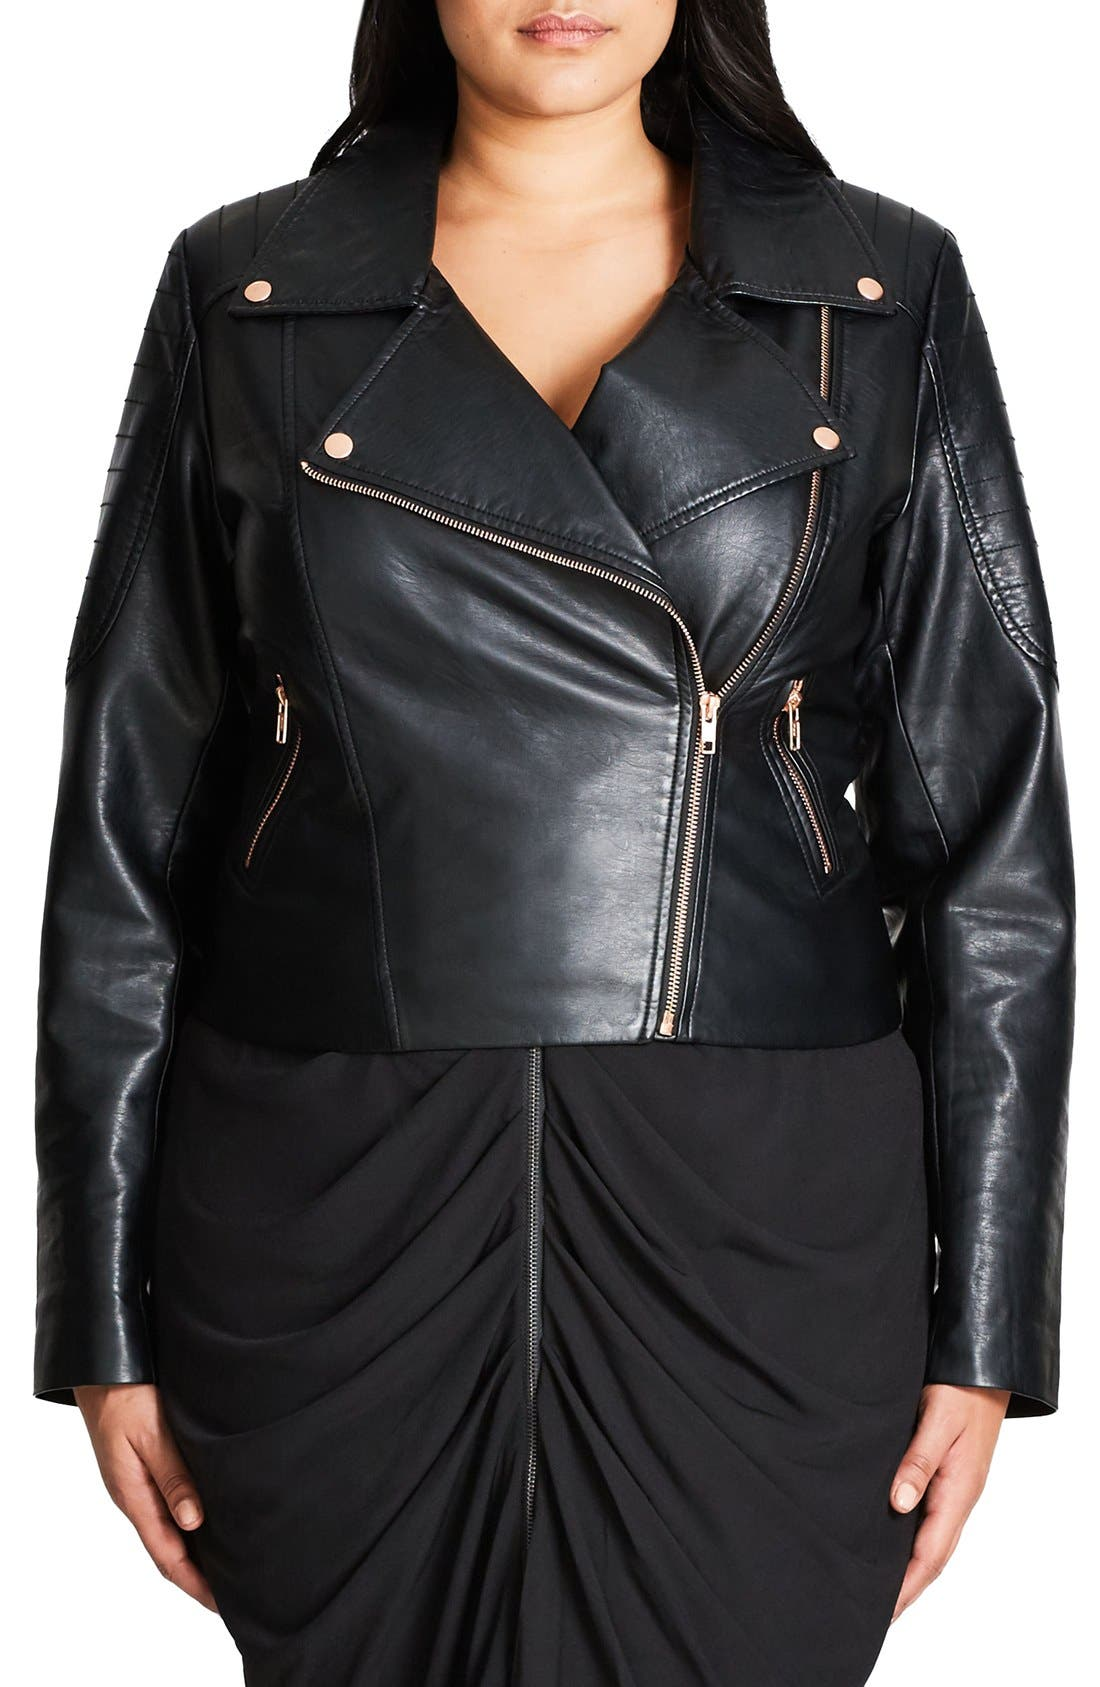 Main Image - City Chic Faux Leather Biker Jacket (Plus Size)